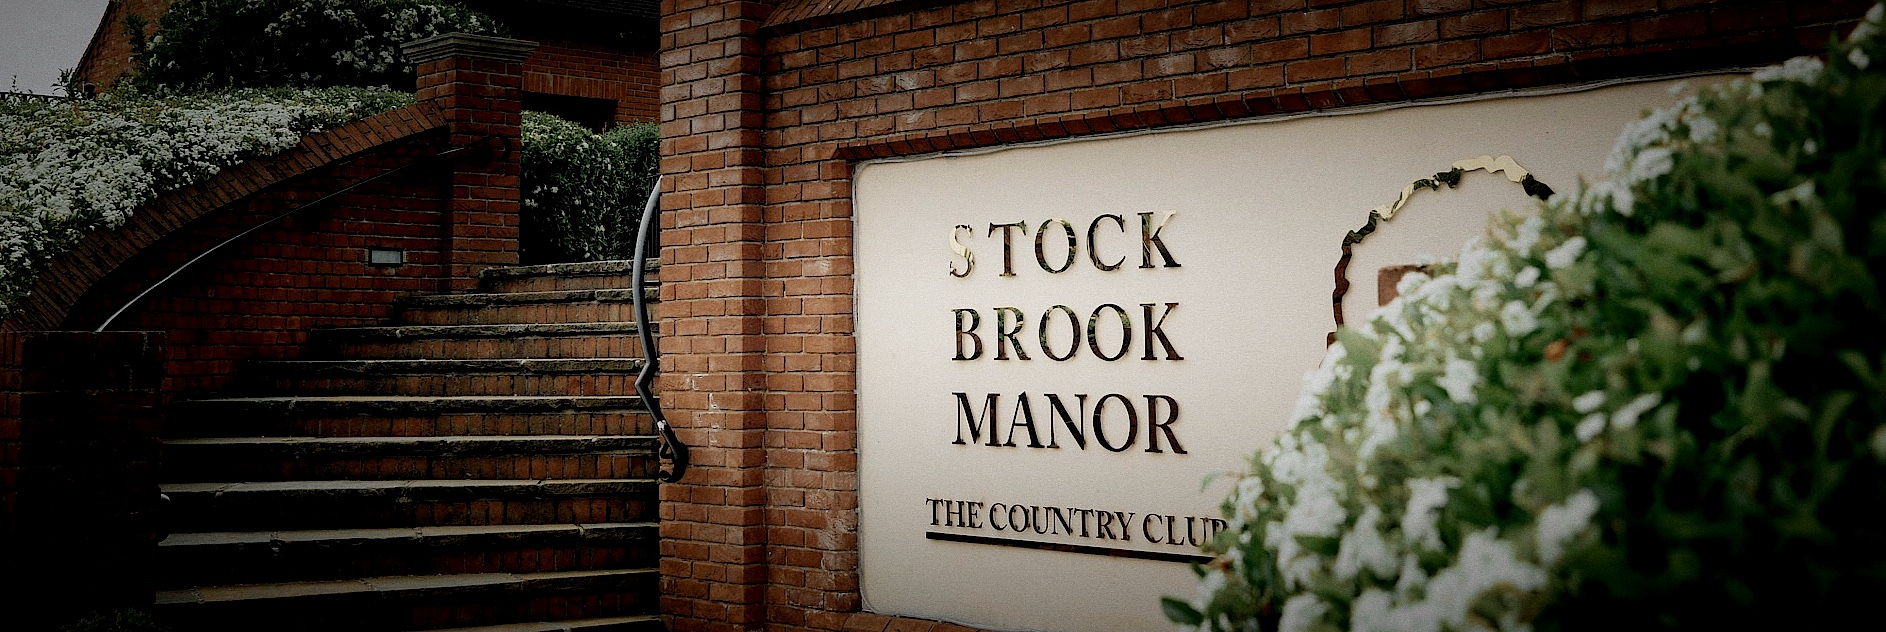 Wedding Videography at Stock Brook Manor in Essex.